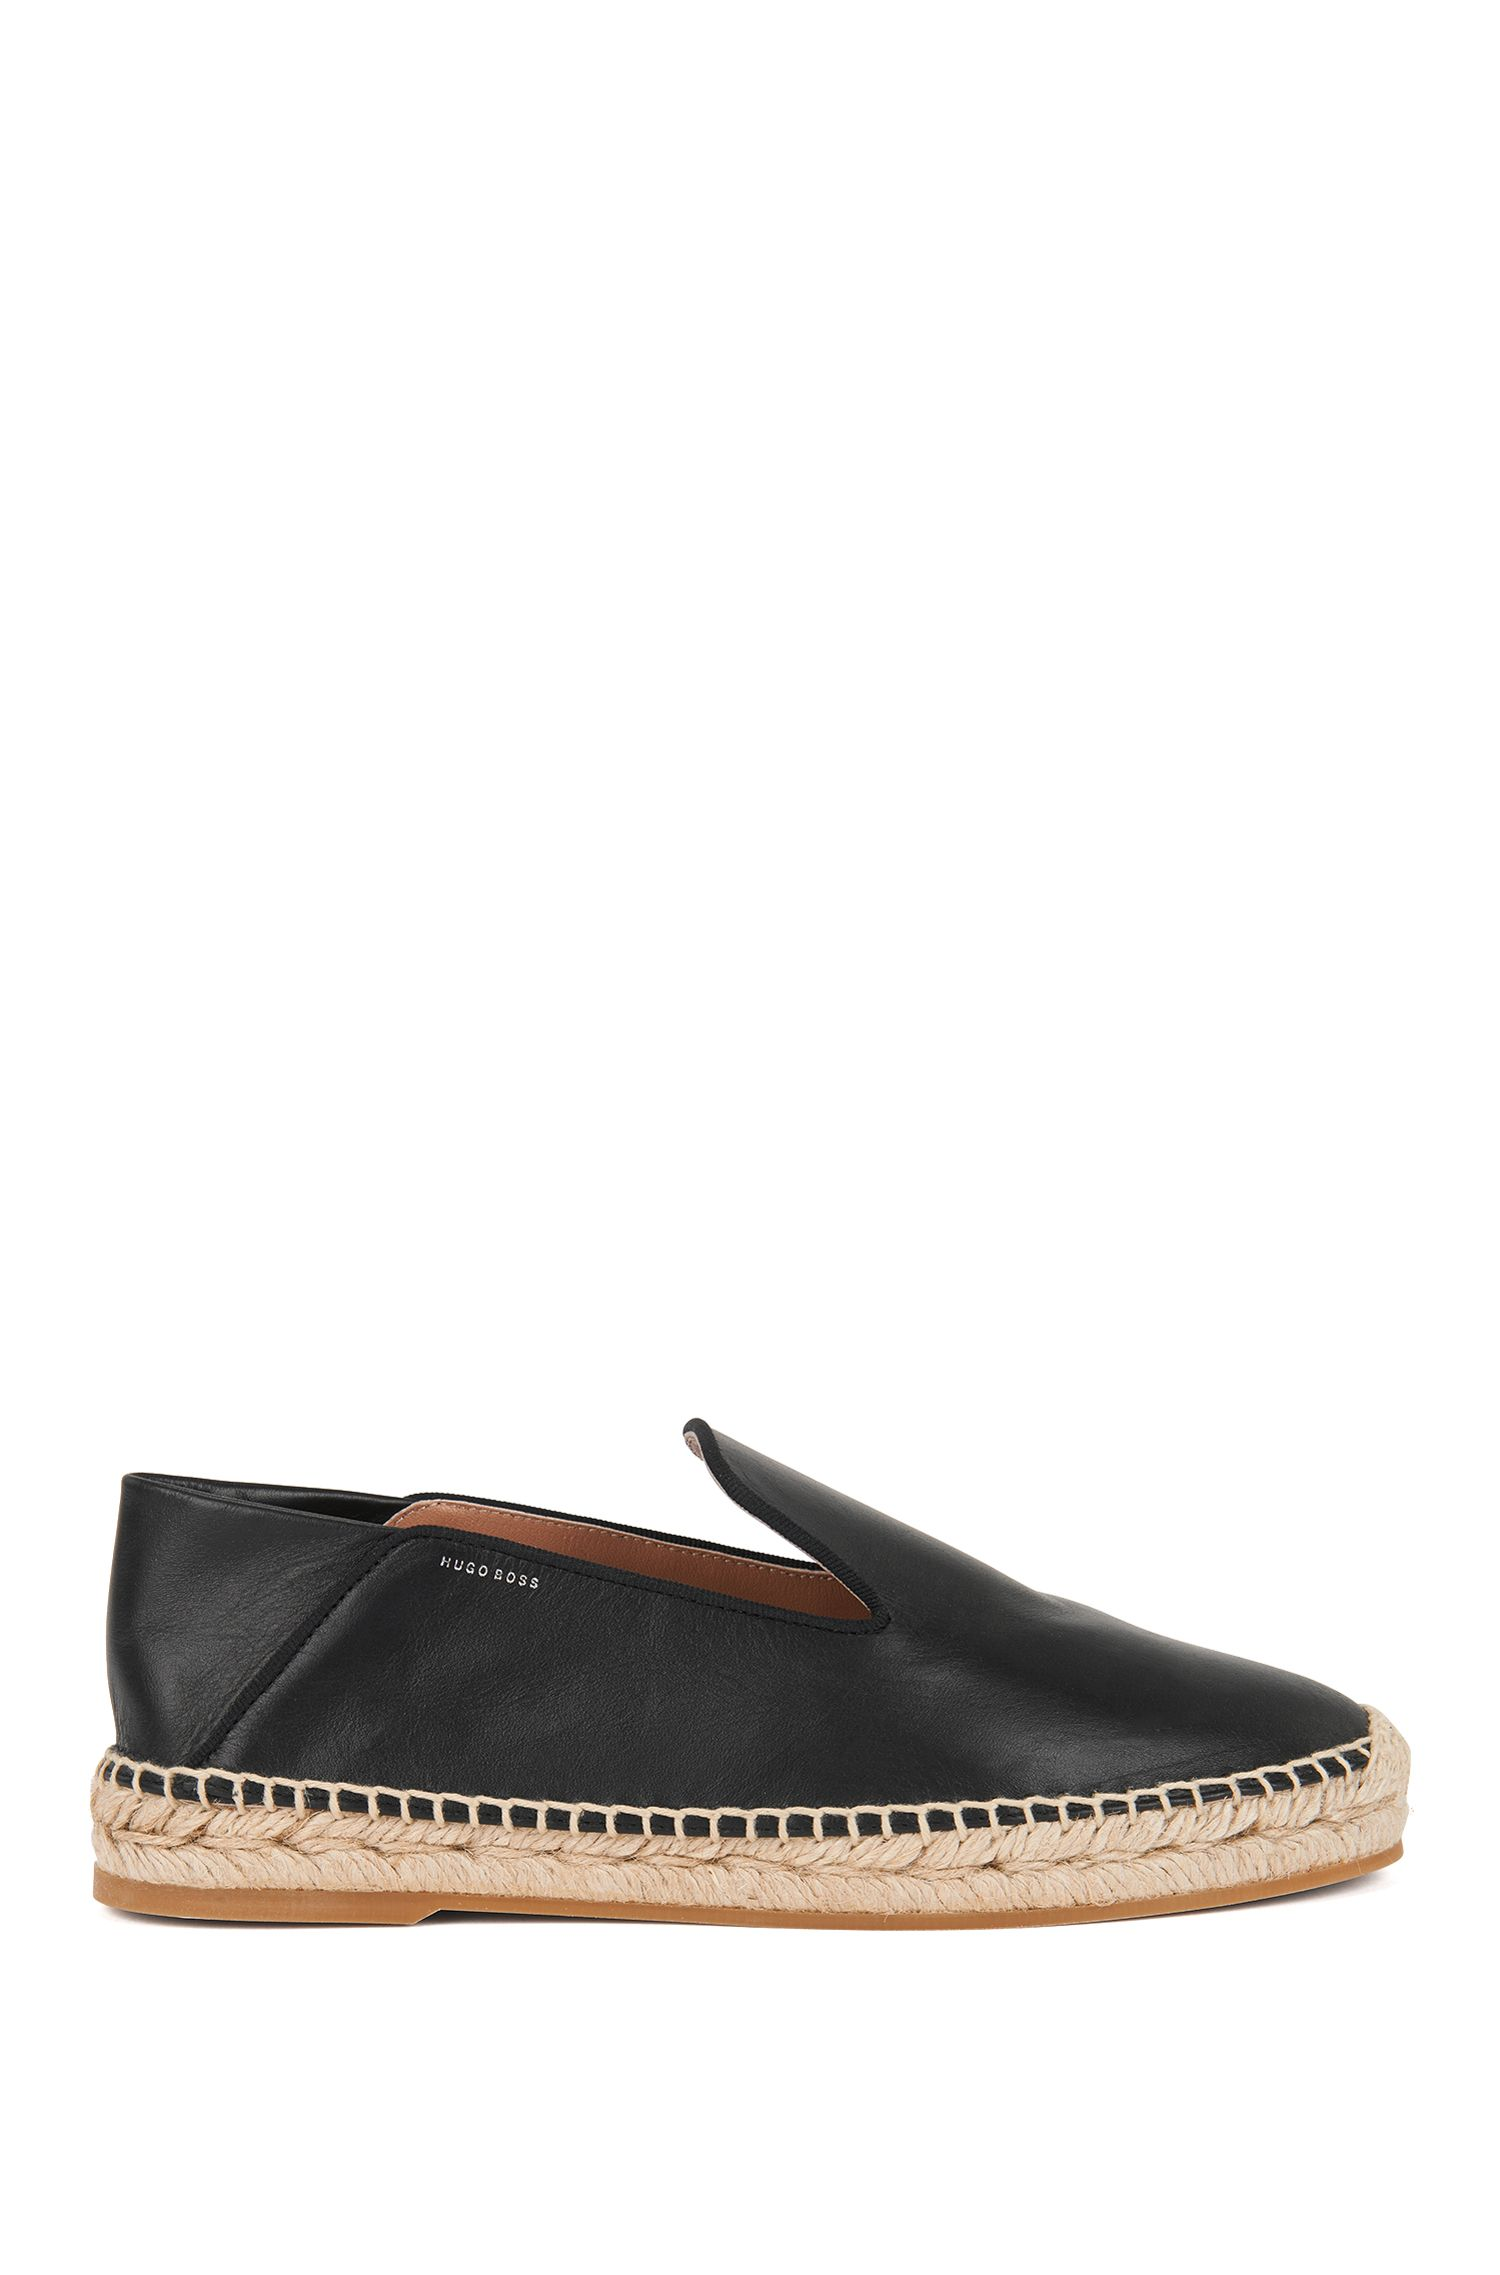 Leather espadrilles with fold-down heel